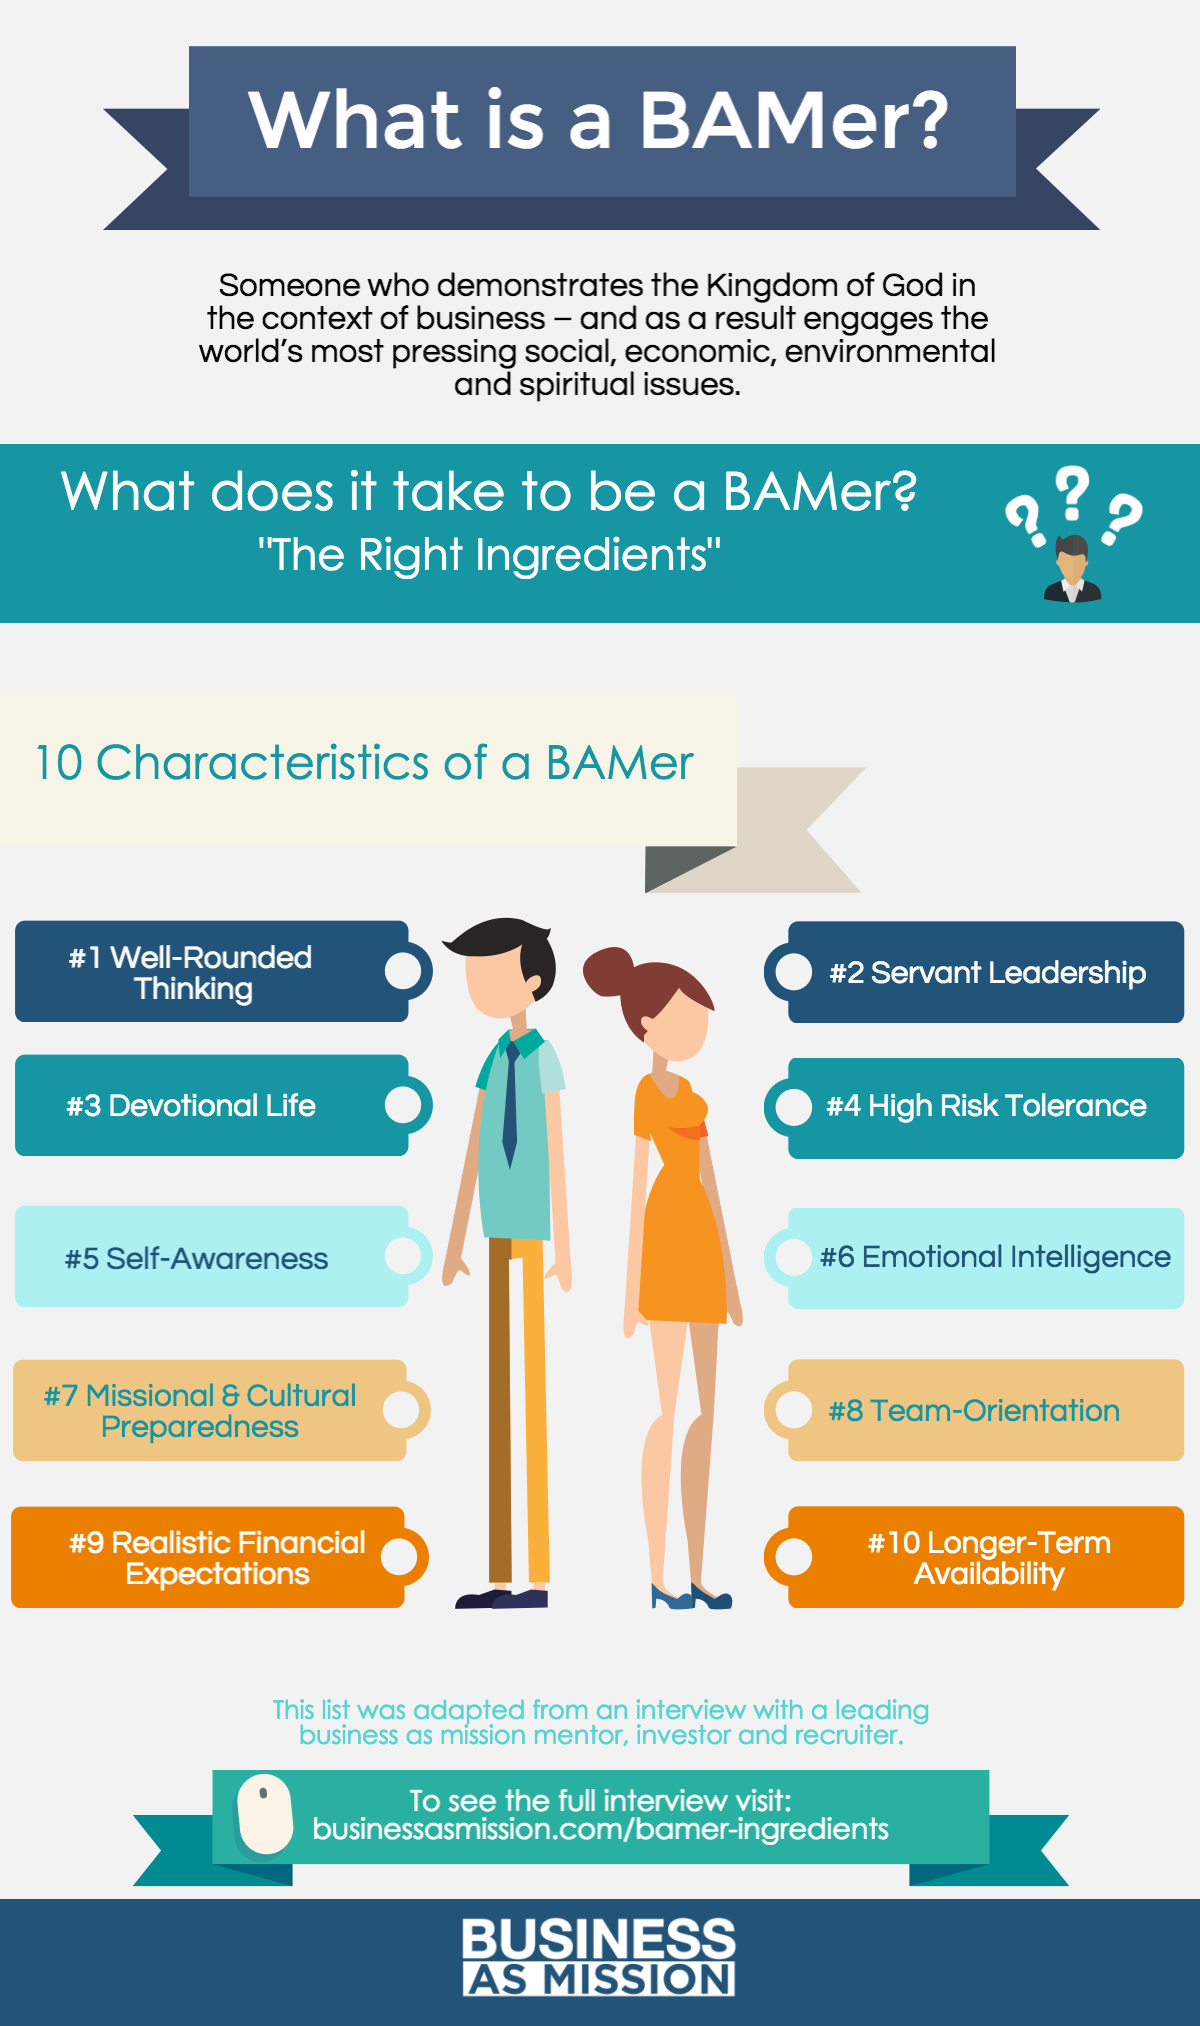 BAMer Ingredients